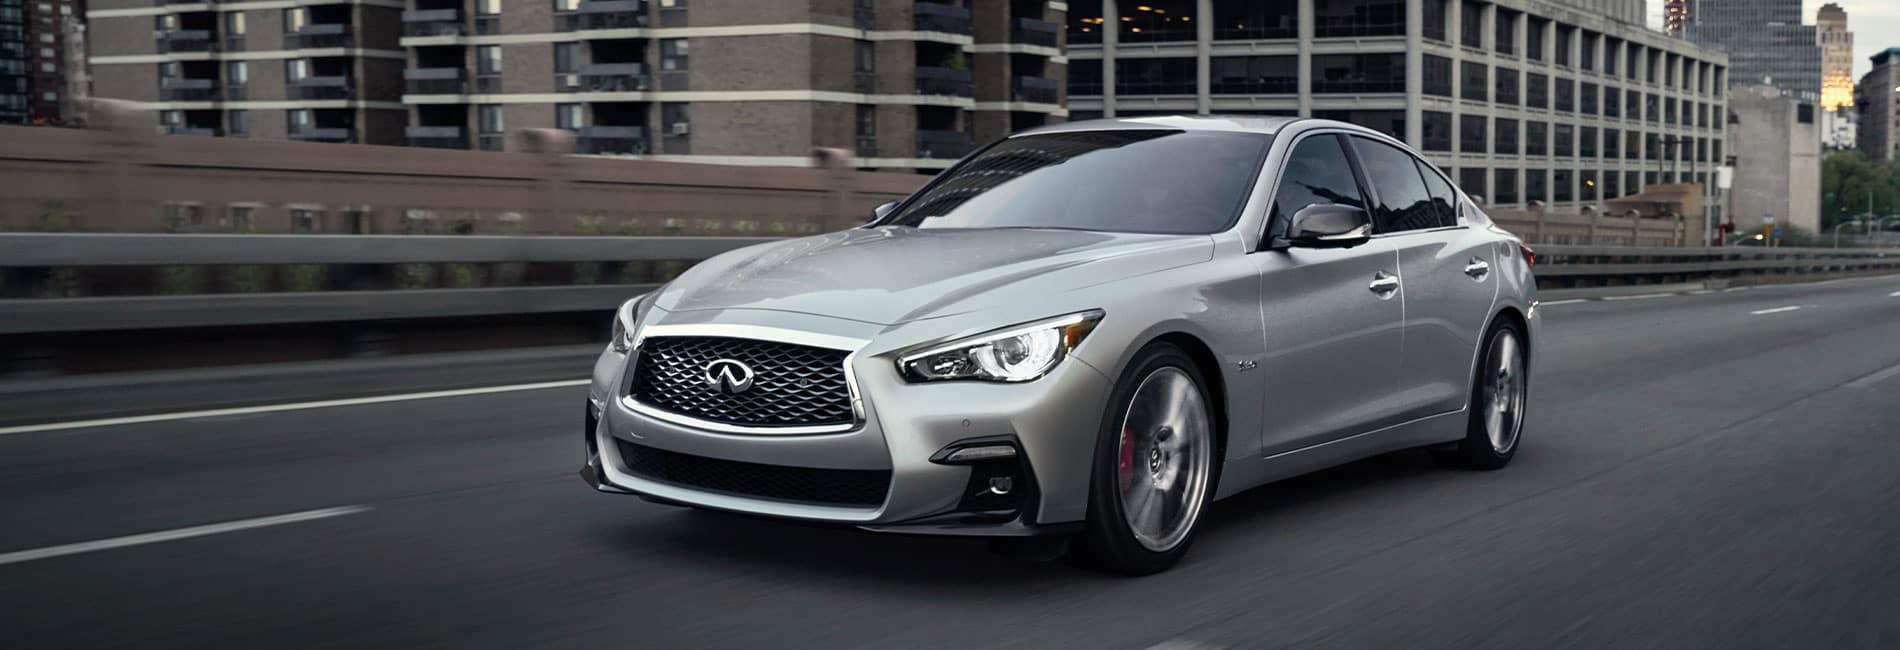 2020 INFINITI Q50  for Sale in Niles, IL